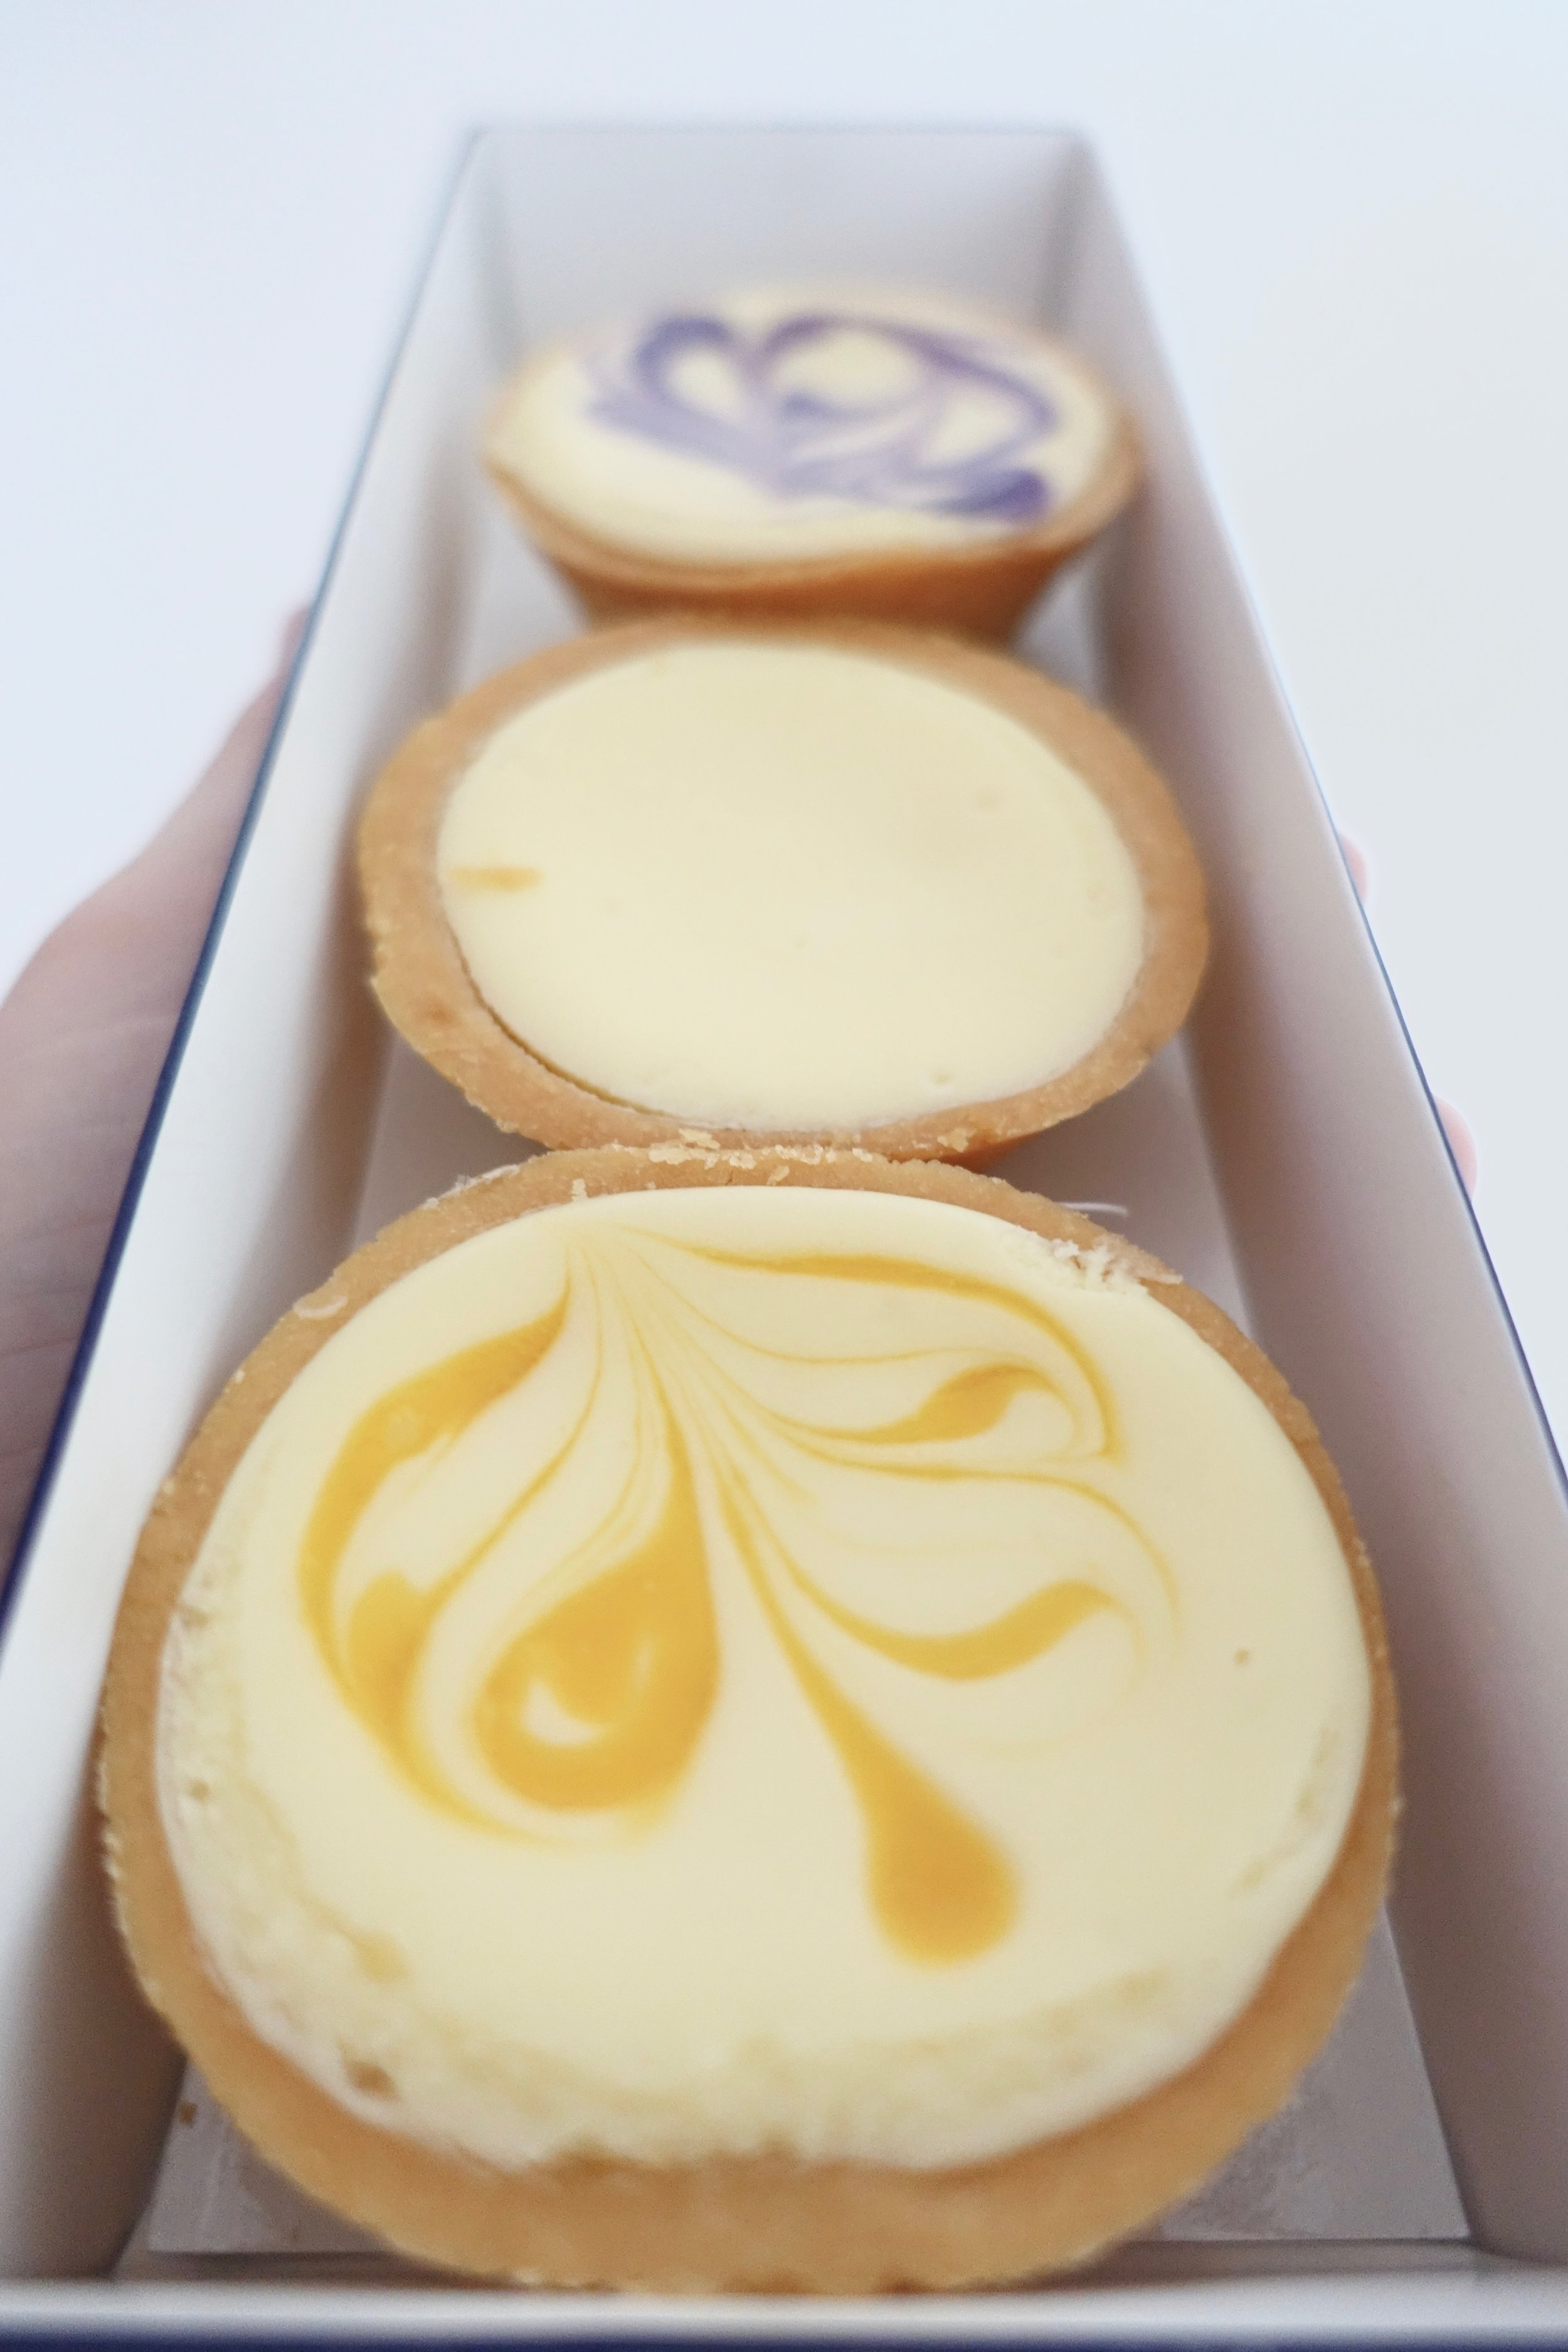 Paper Moon - The creamiest tarts hailing from Korea. Local entrepreneur bringing international brands locally.